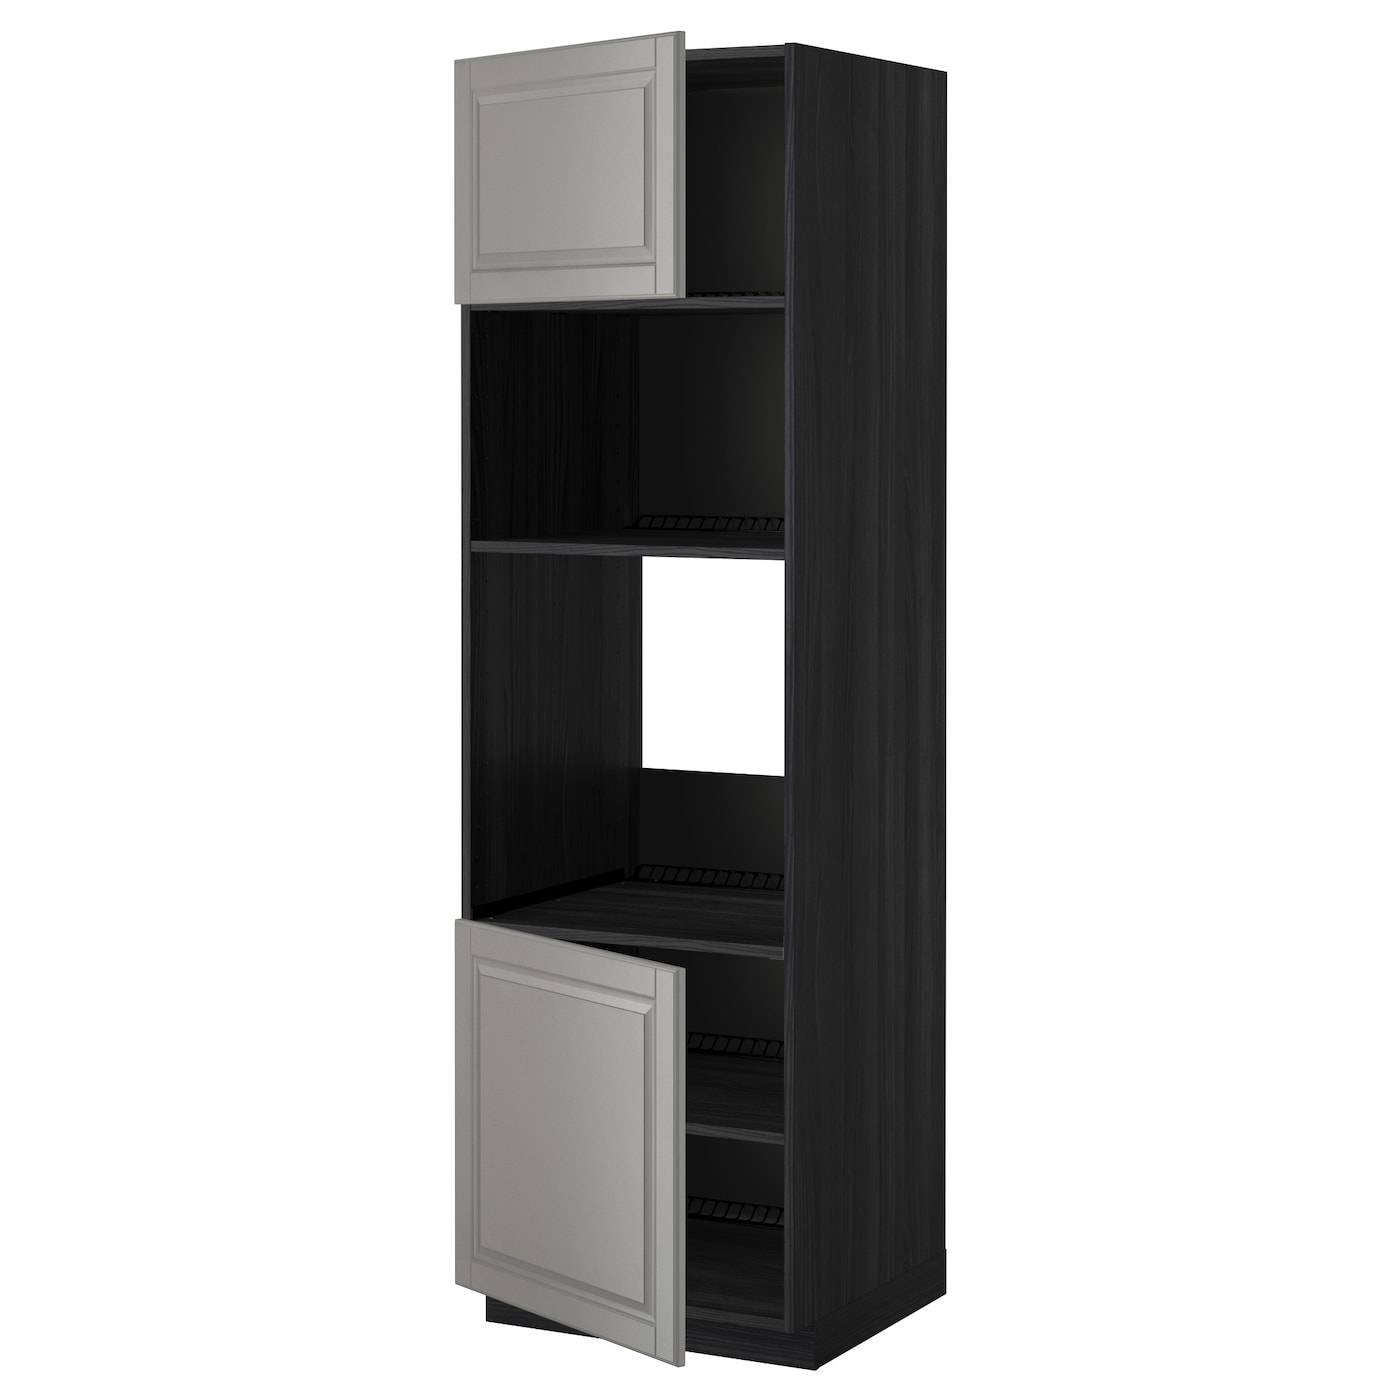 oven housing units ikea. Black Bedroom Furniture Sets. Home Design Ideas